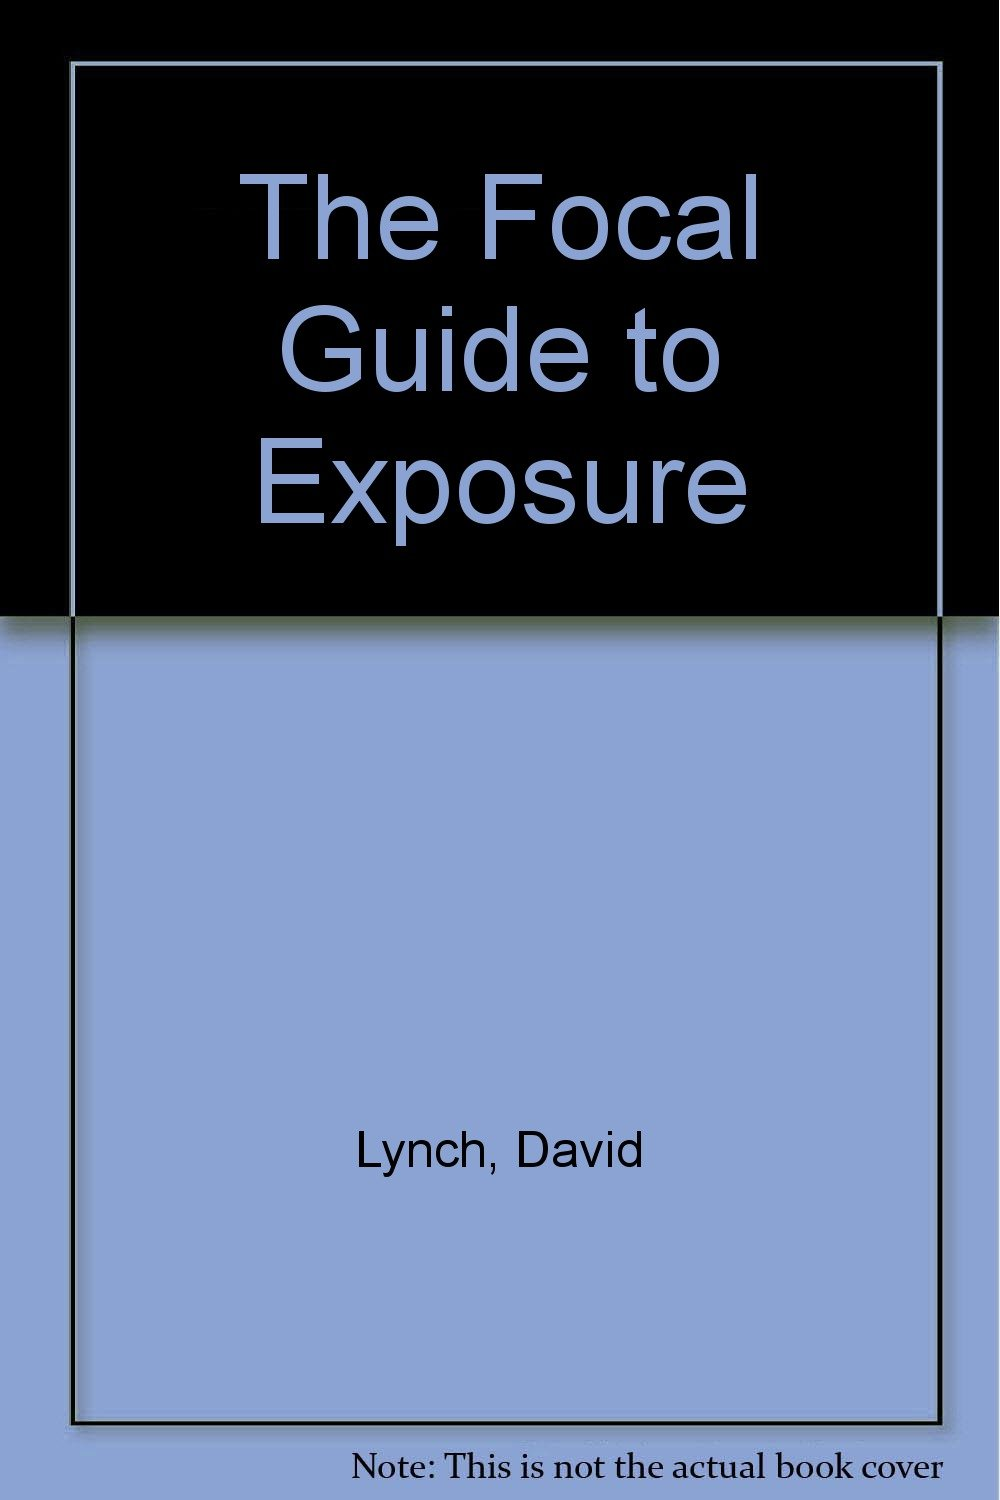 focalguide to exposure